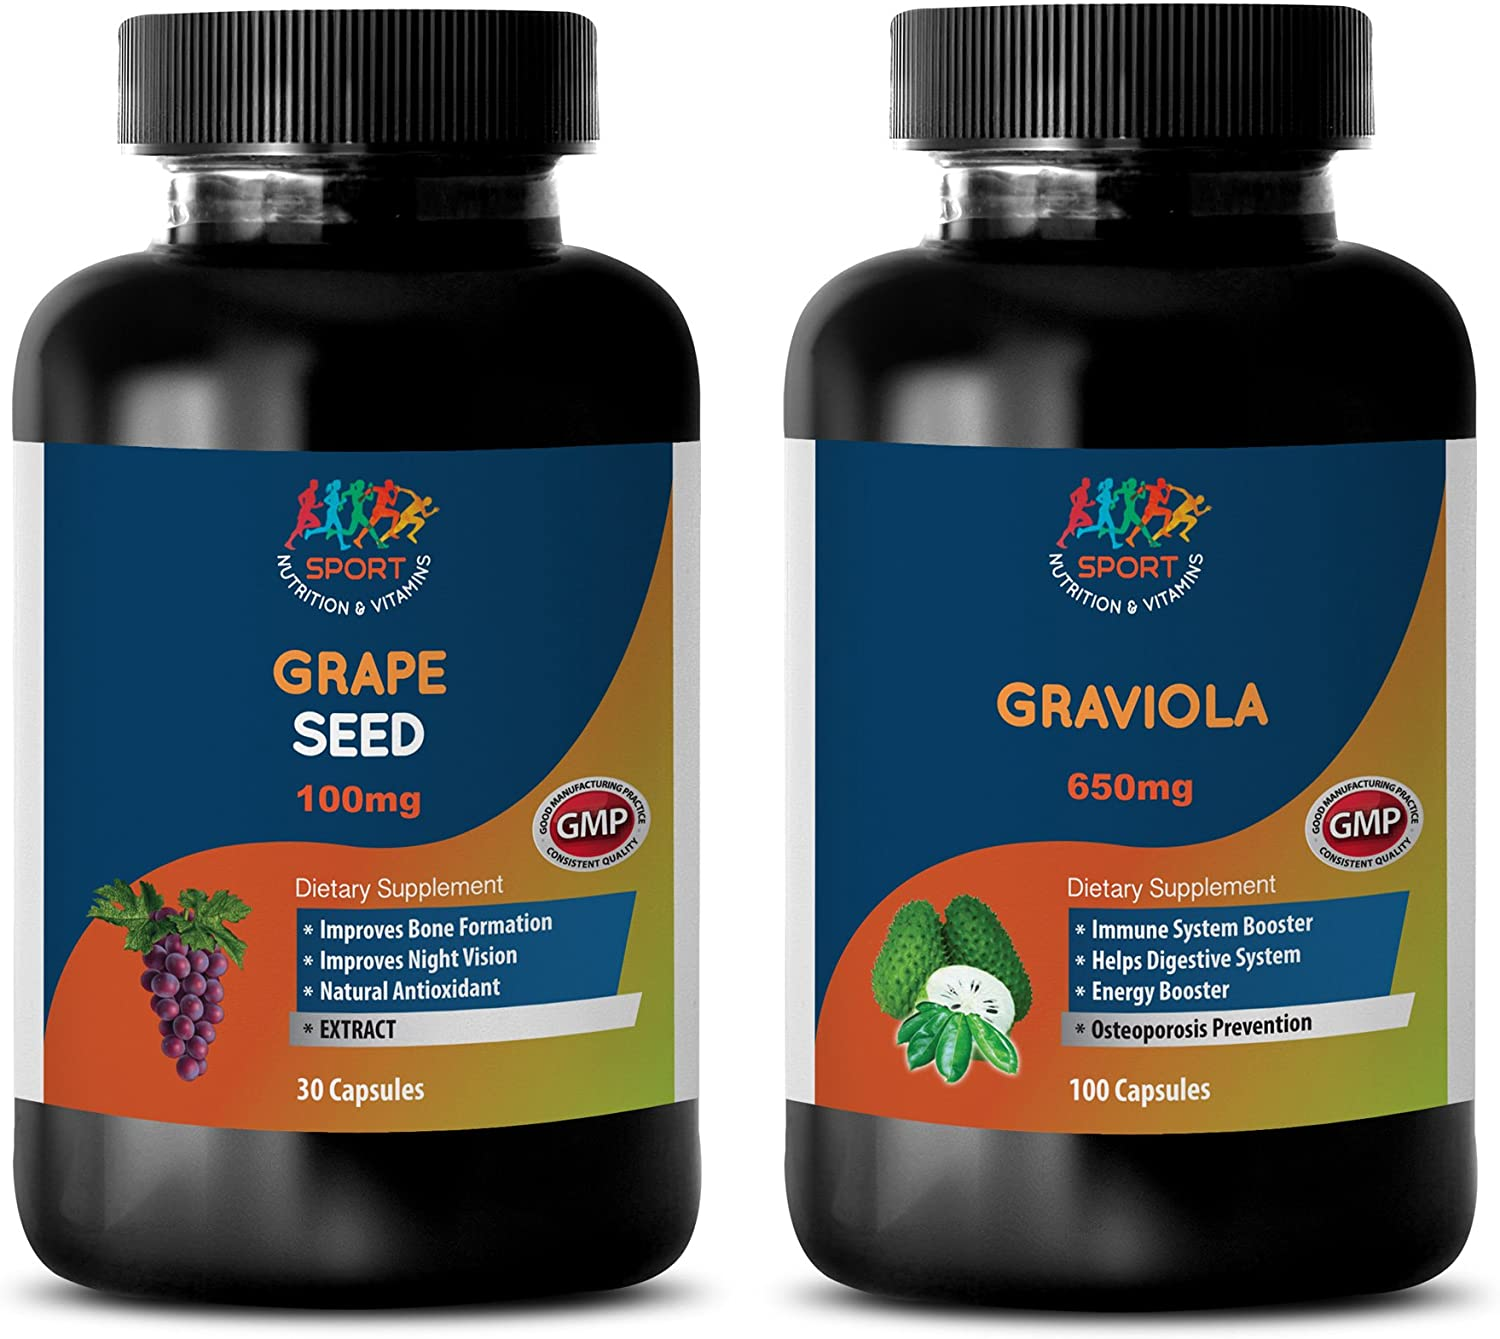 Metabolism and Nutrition - Grape Seed Extract – GRAVIOLA Extract - graviola Extract - 2 Bottles Combo (30 Capsules + 60 Capsules)